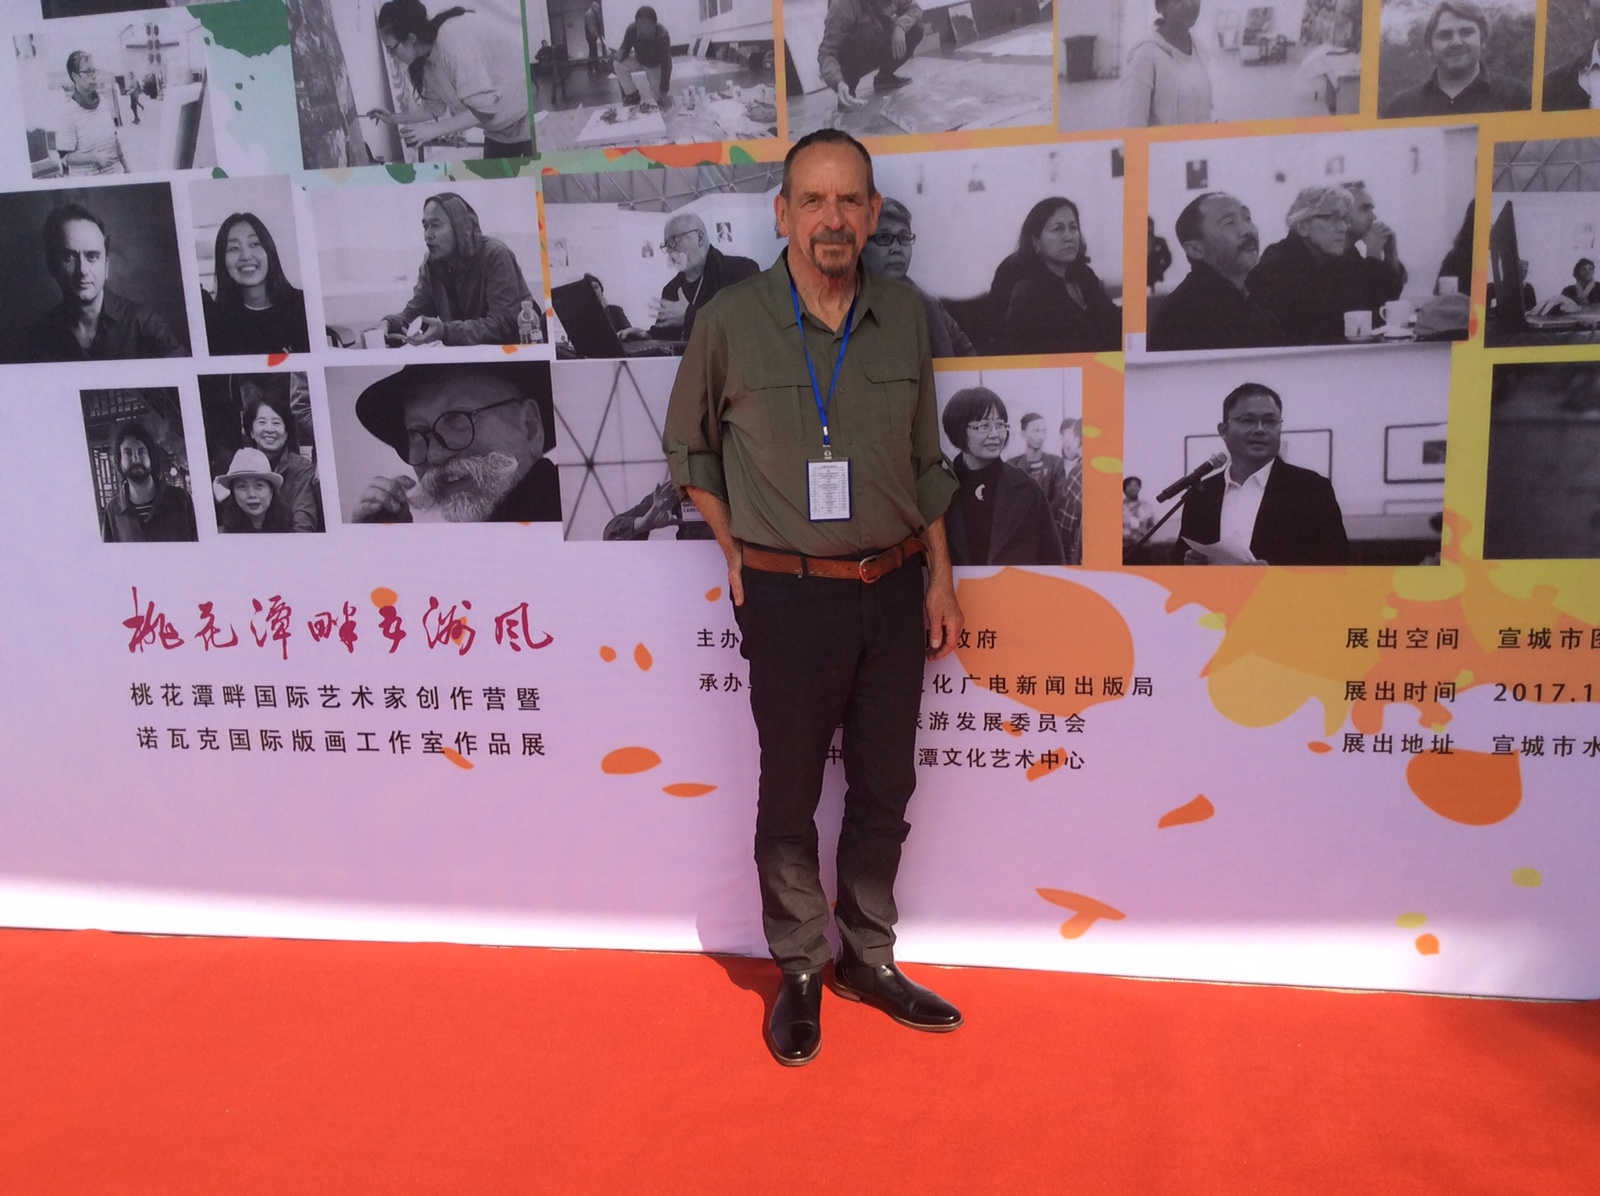 Robert Scott outside Xuancheng Exhibition